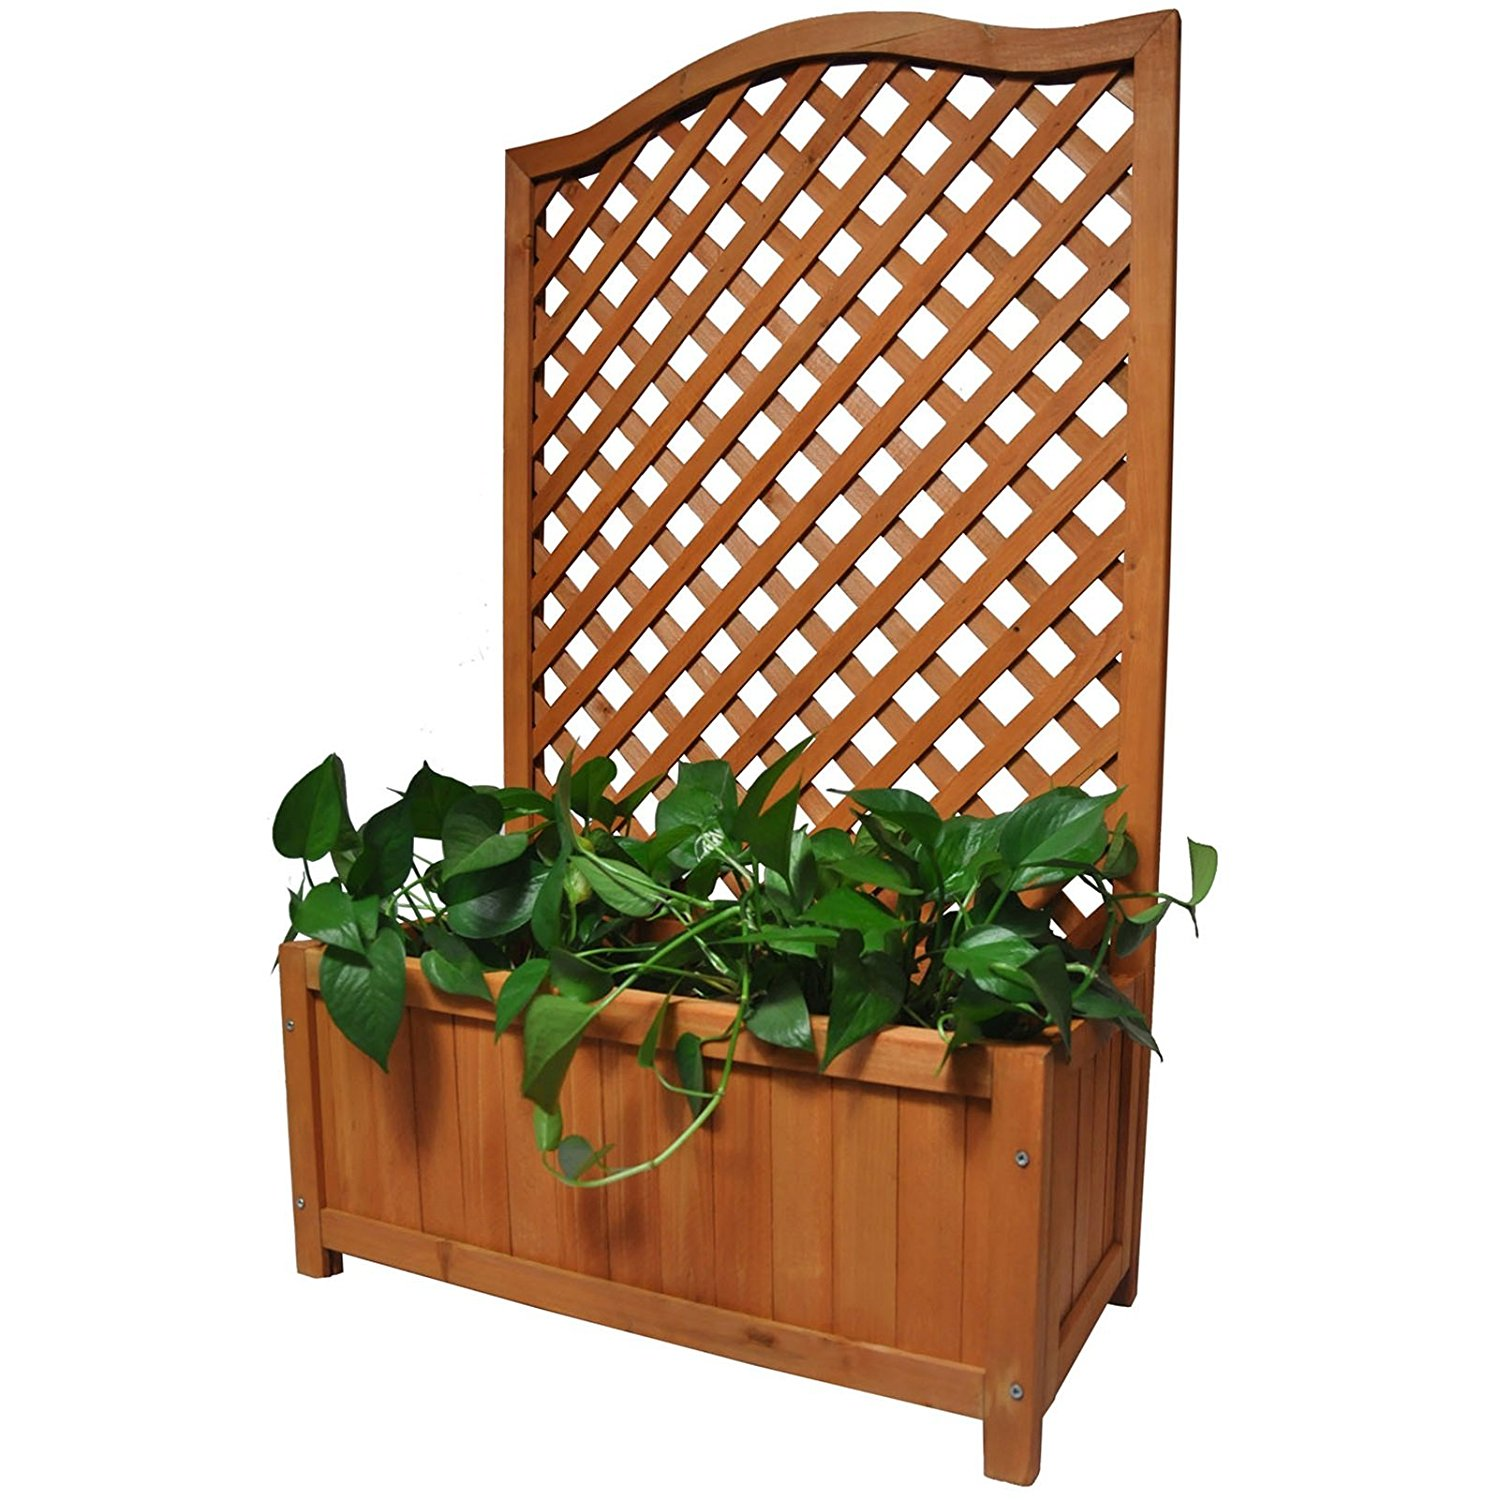 Rectangular Wooden Planter with Lattice for Vines Climbing Flower ...